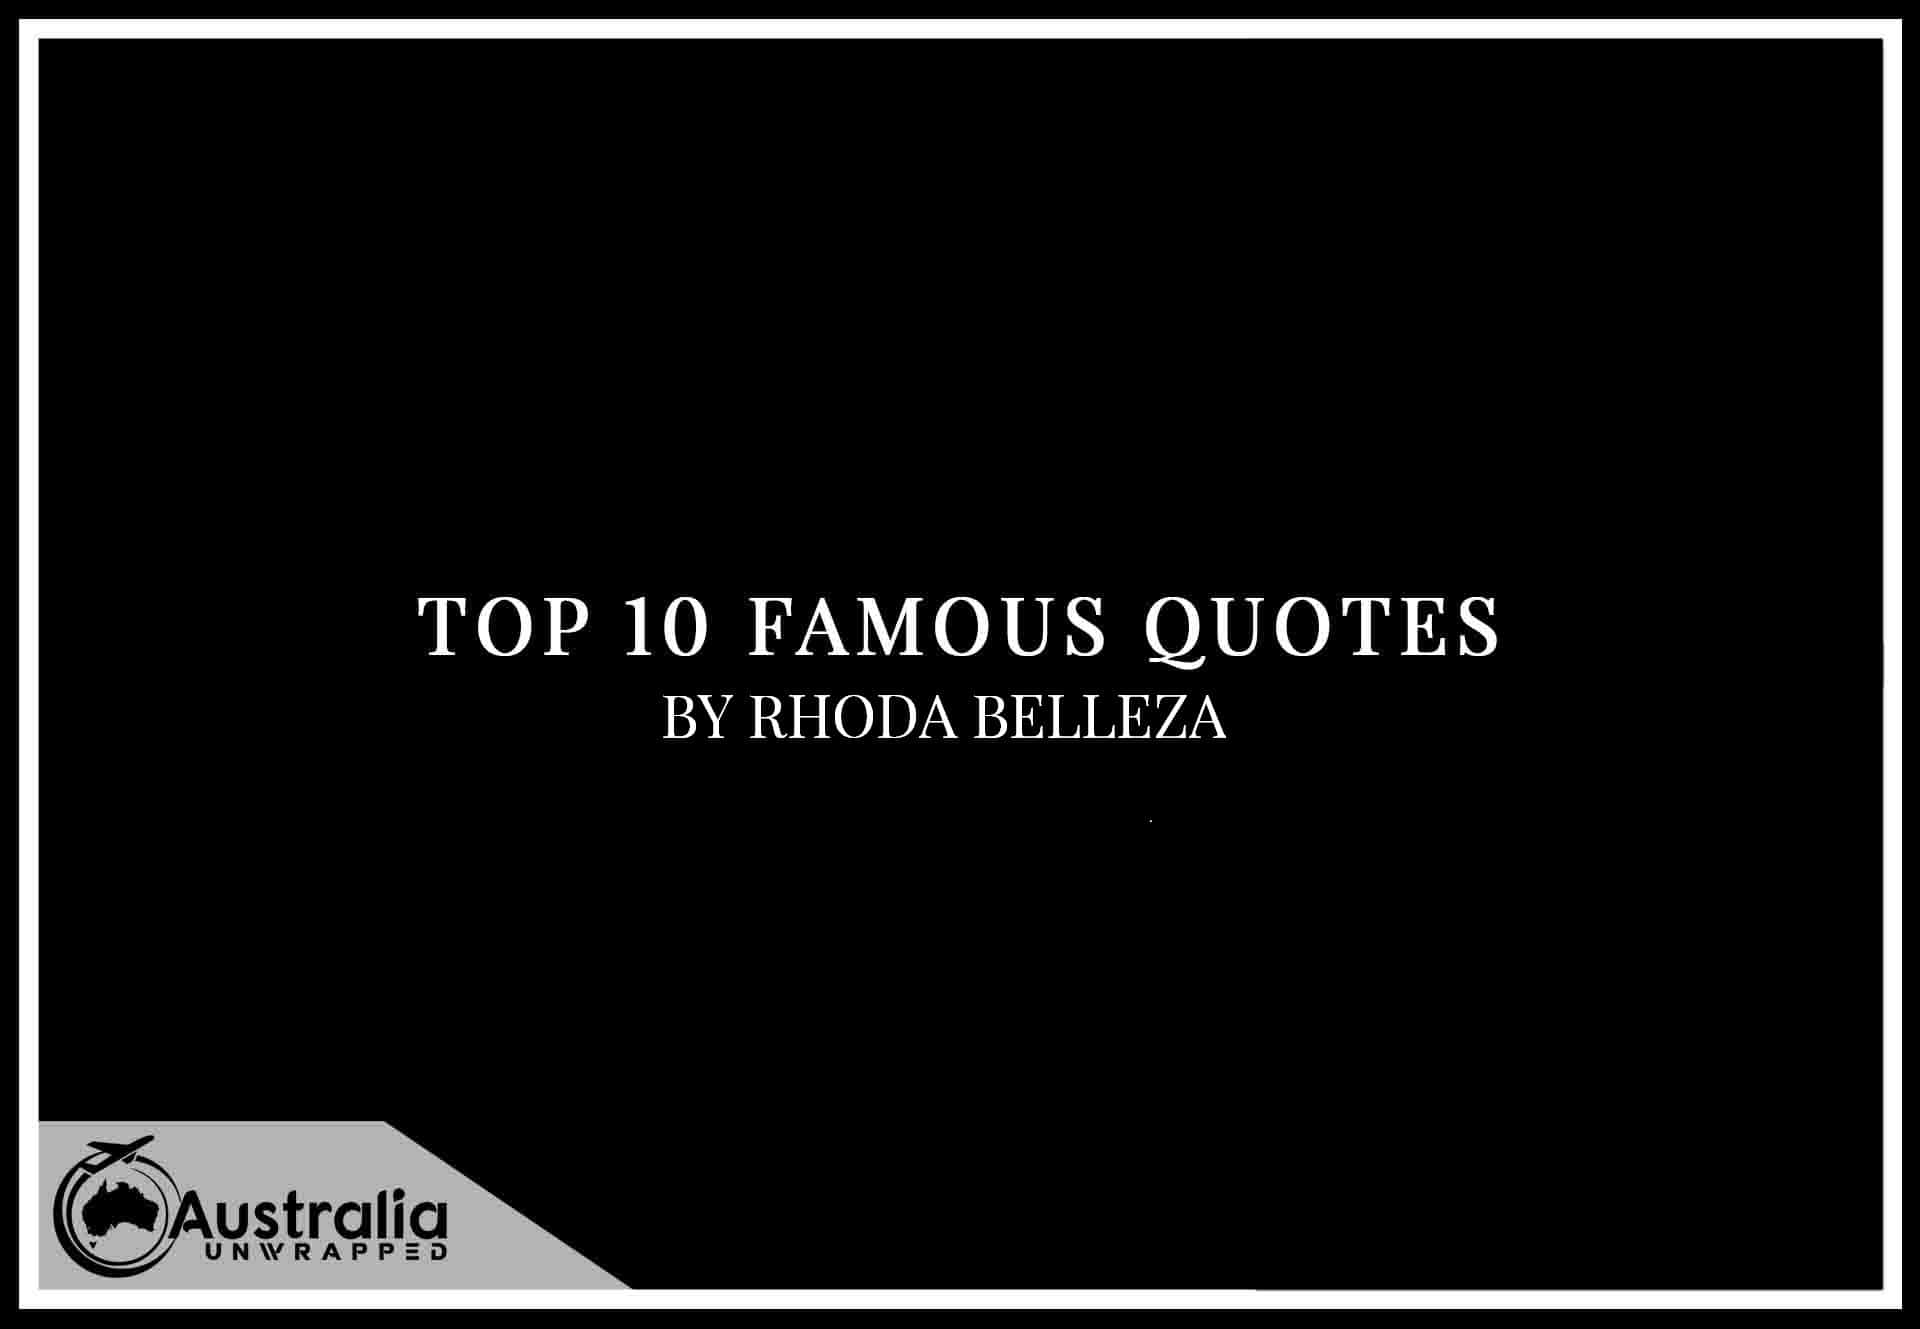 Rhoda Belleza's Top 10 Popular and Famous Quotes